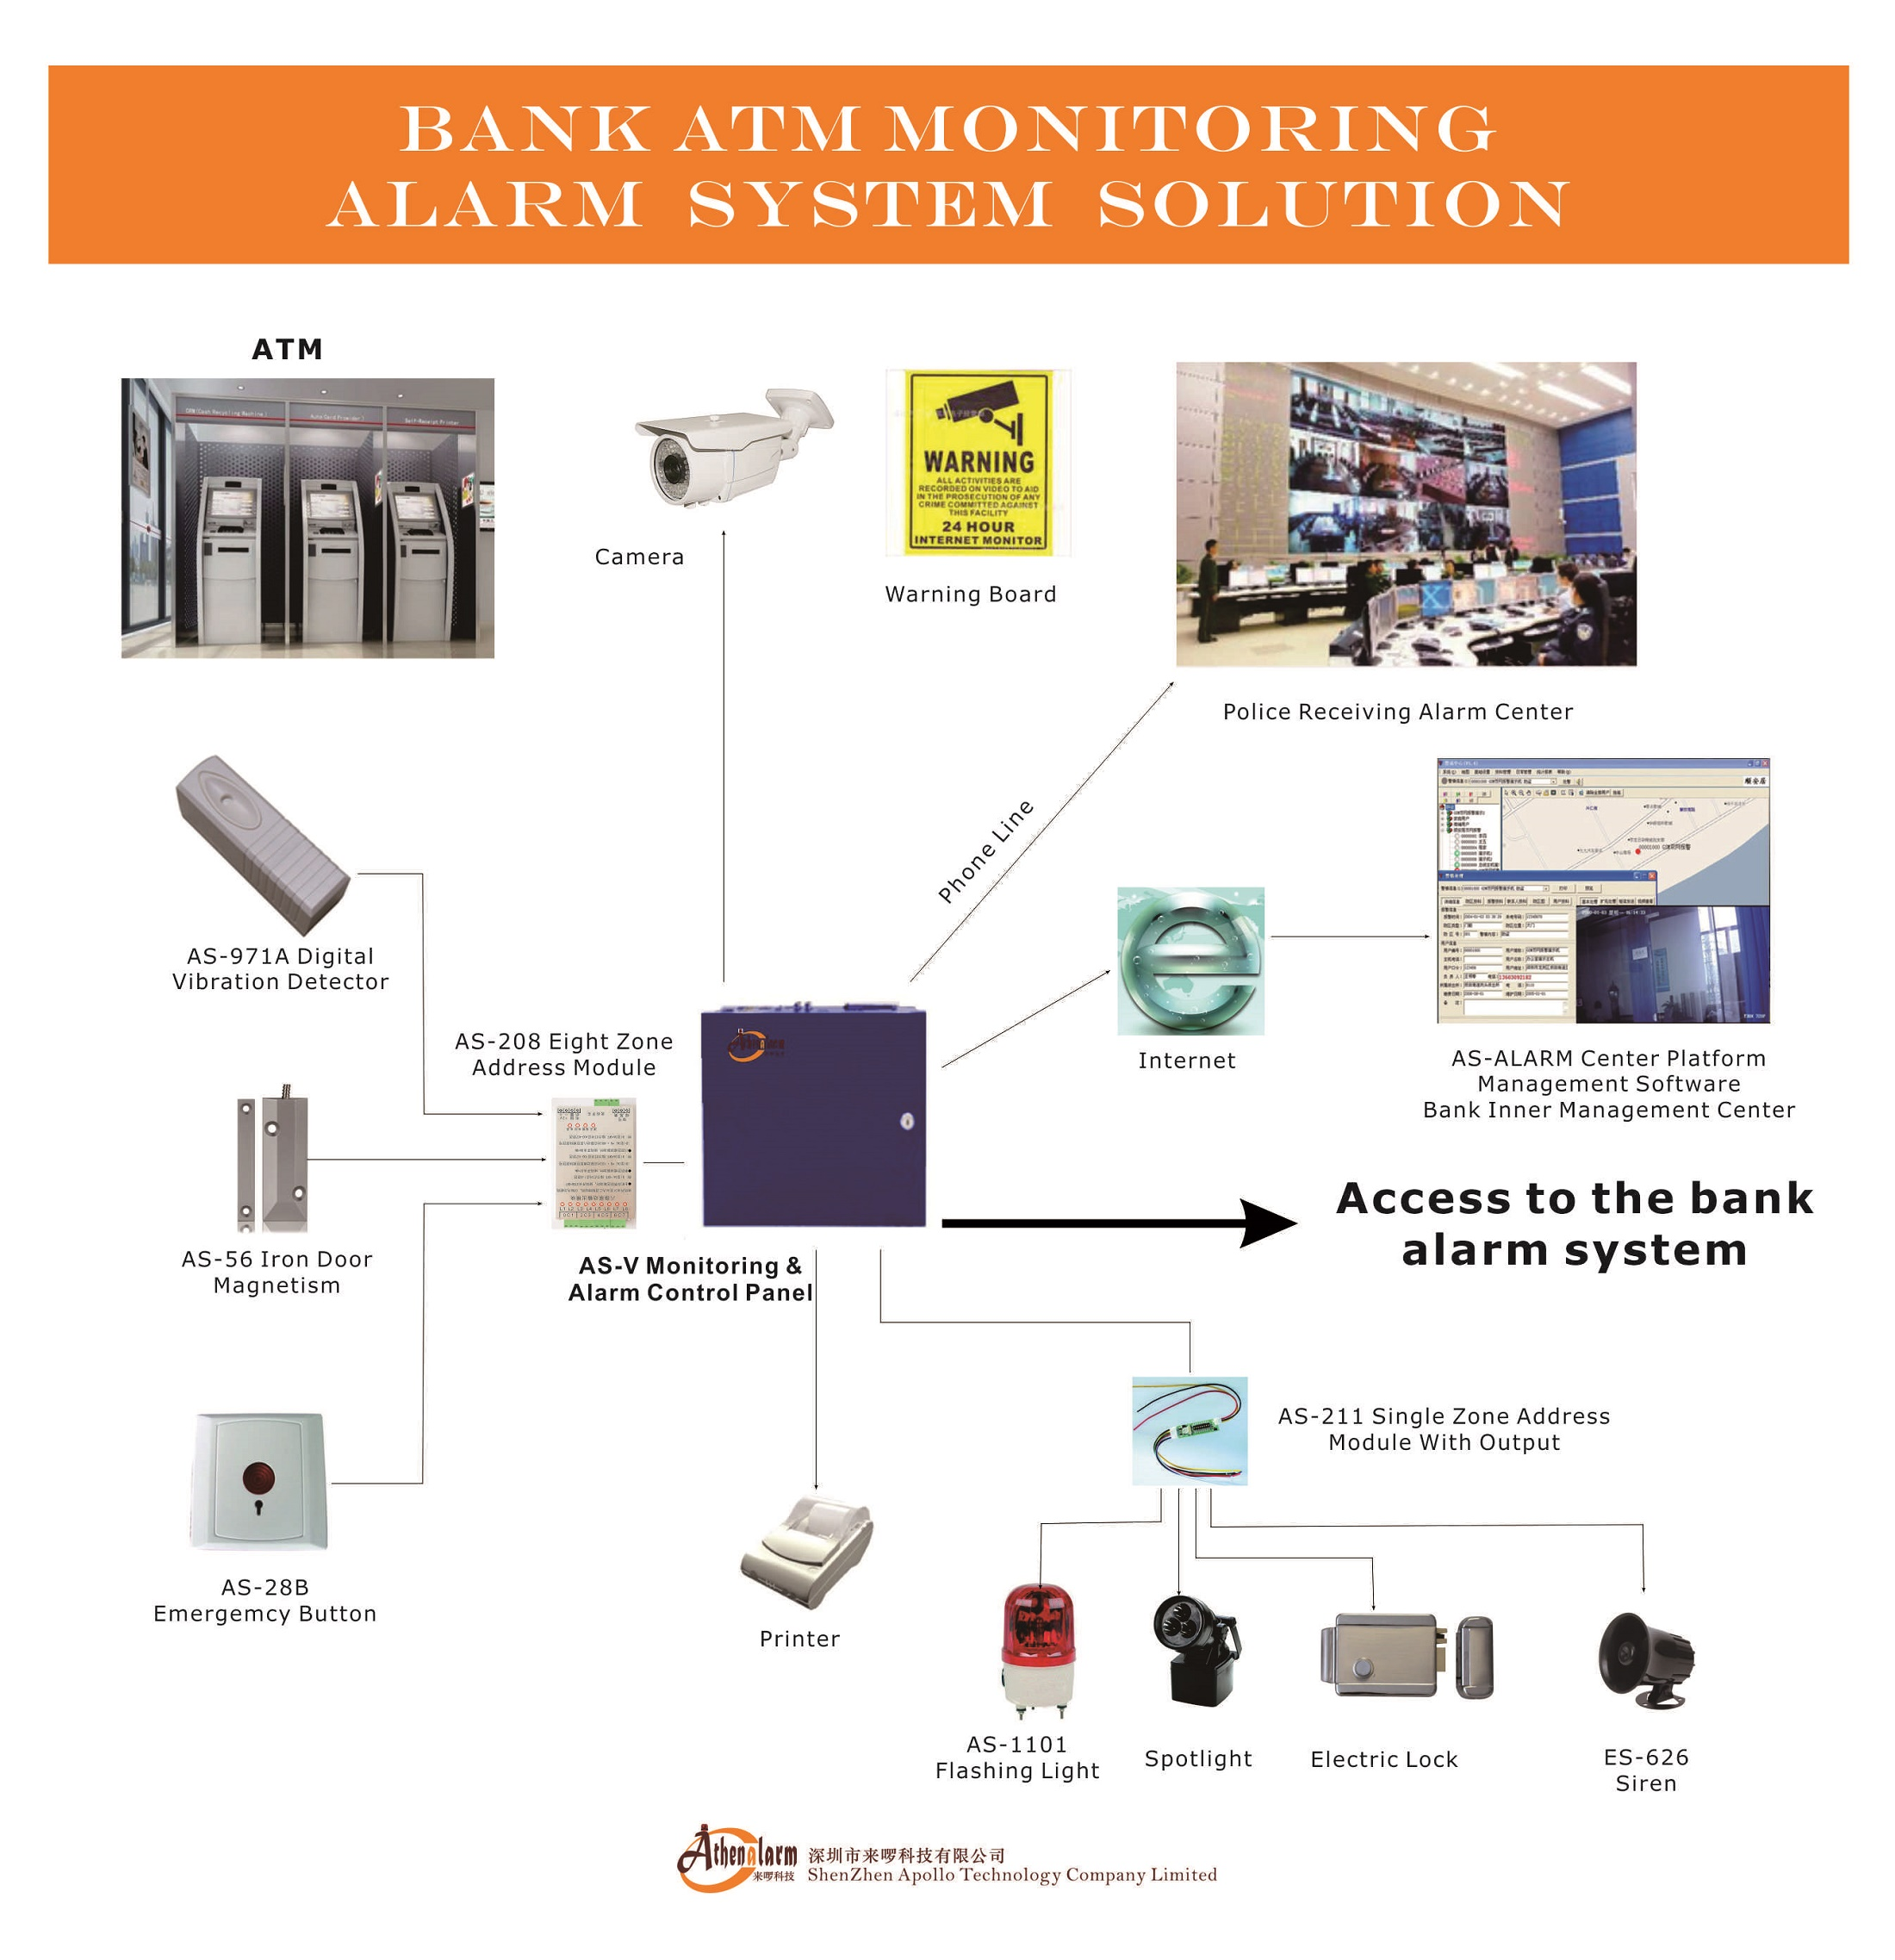 Bank ATM monitoring alarm system solution